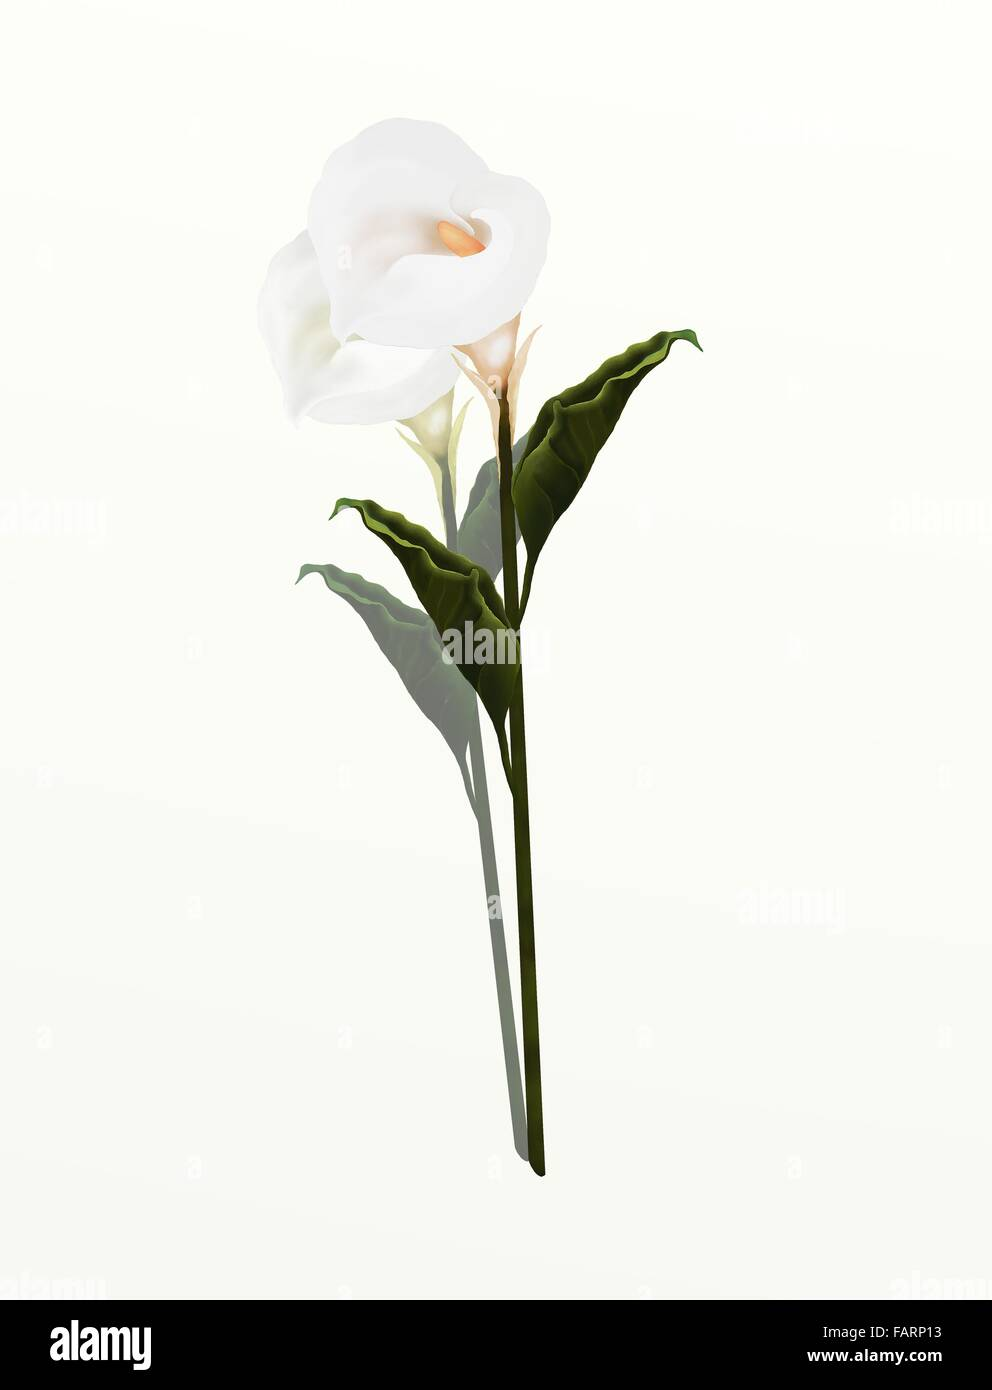 A beautifully perfect white calla lily flower isolated on white a beautifully perfect white calla lily flower isolated on white background calla lily very popular especially as a wedding fl izmirmasajfo